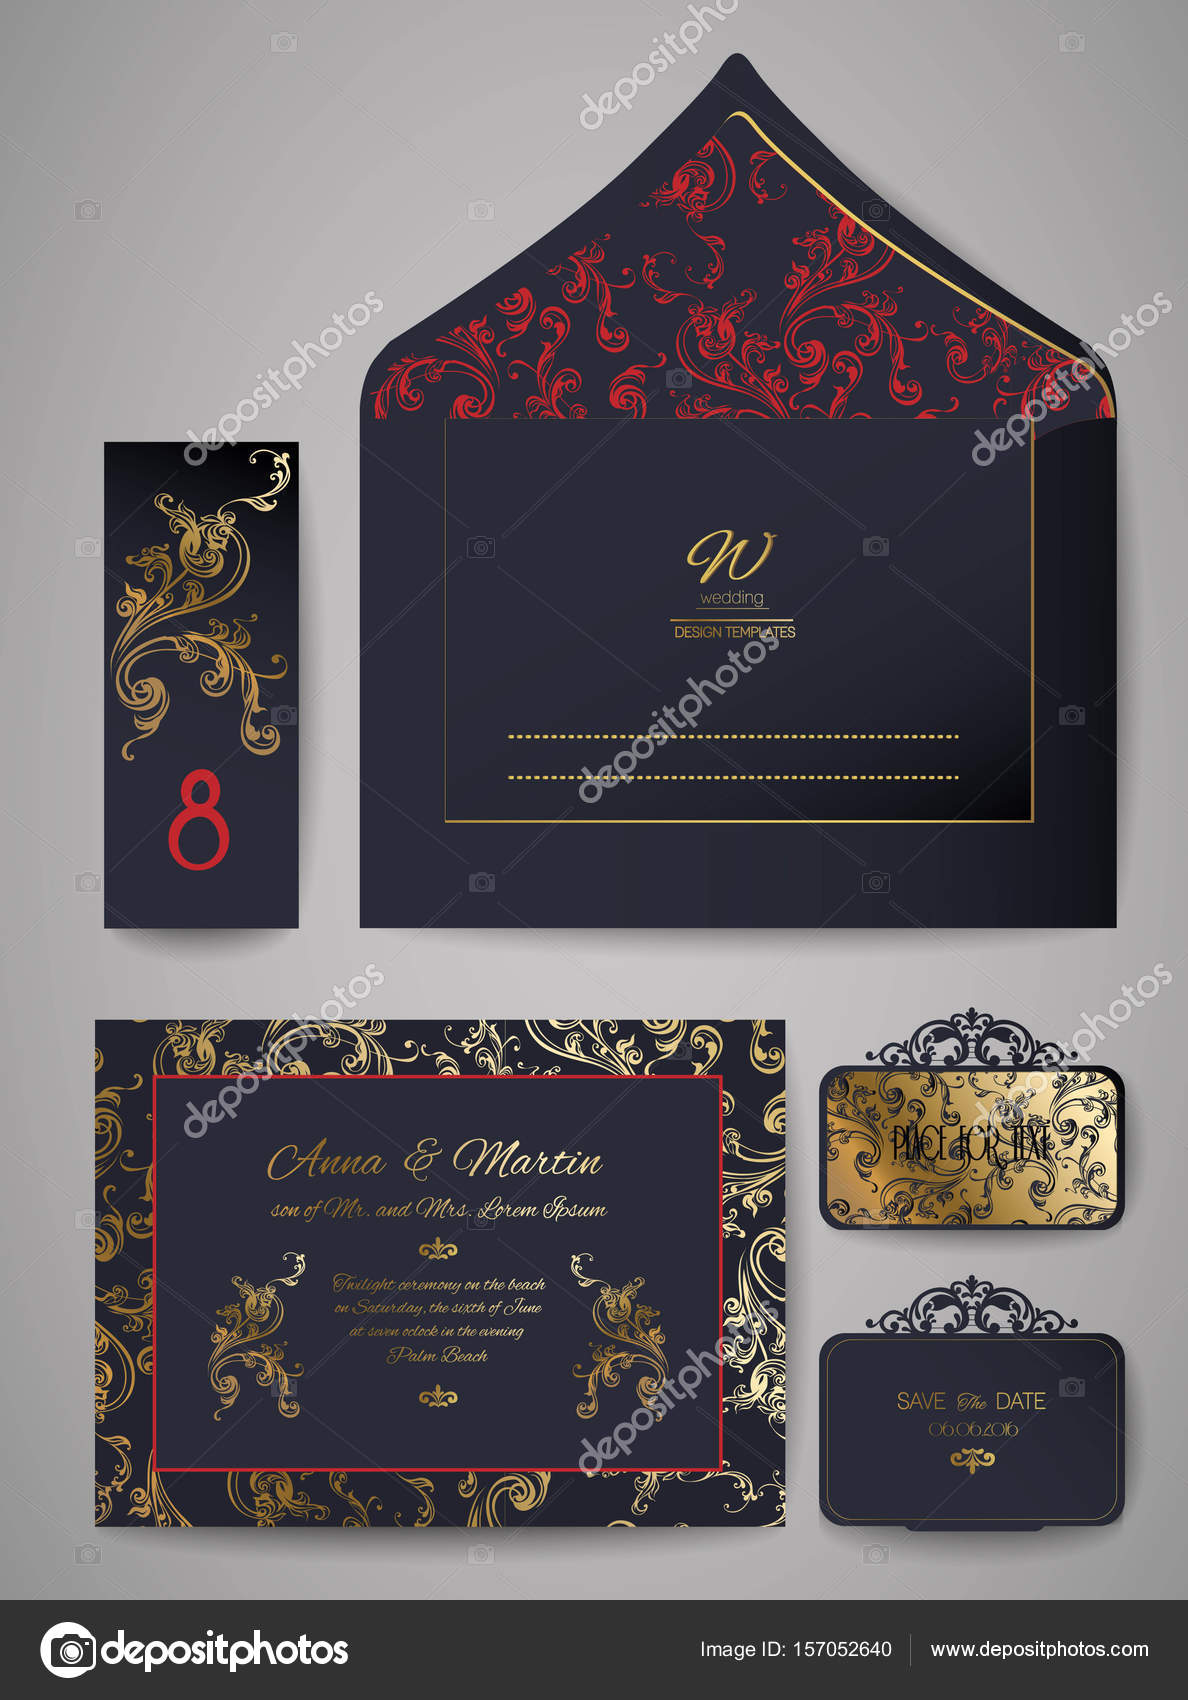 template wedding invitation and envelope with floral golden ornament